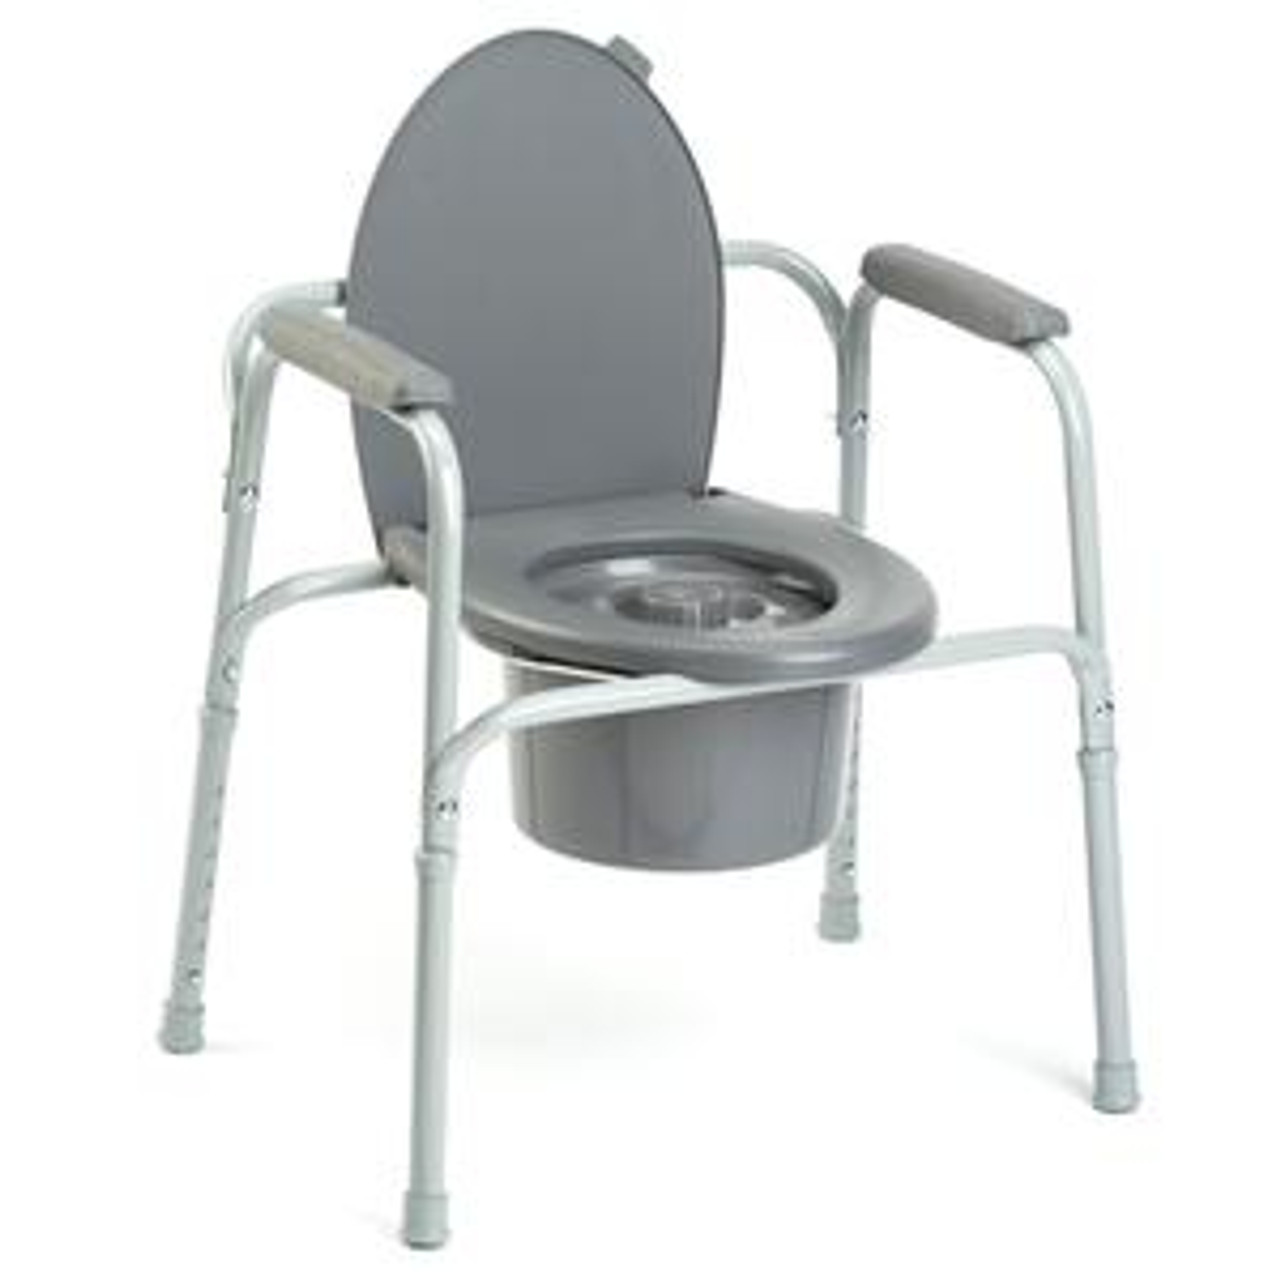 Commode 3 In 1 Aluminum